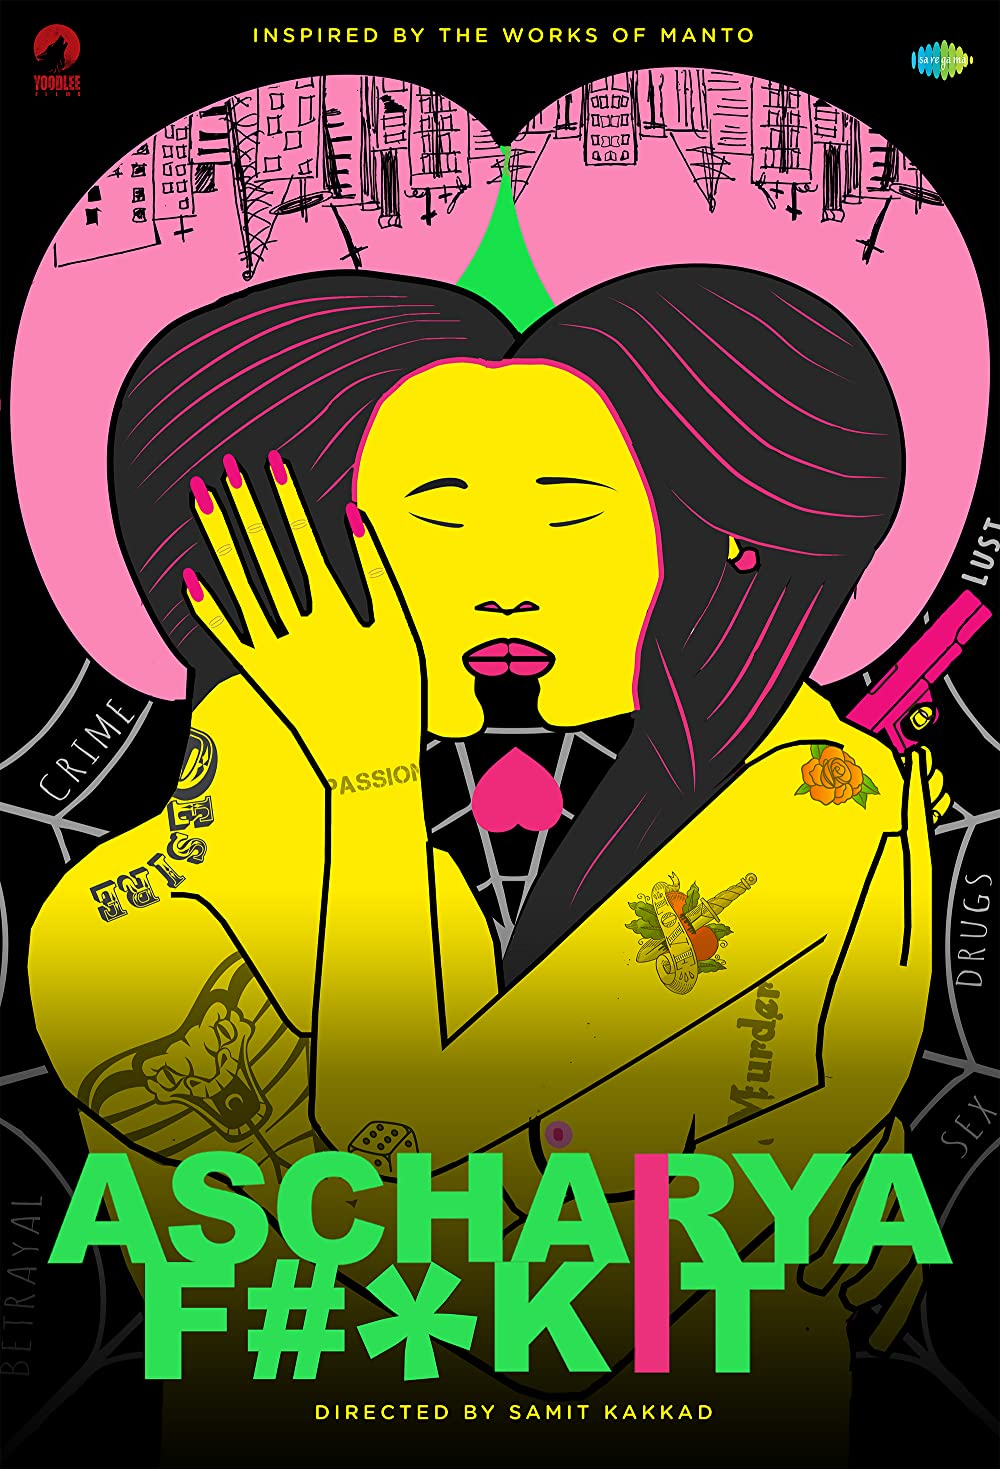 18+ Ascharya Fk It 2018 Hindi 720p UNRATED HDRip ESubs 610MB Download